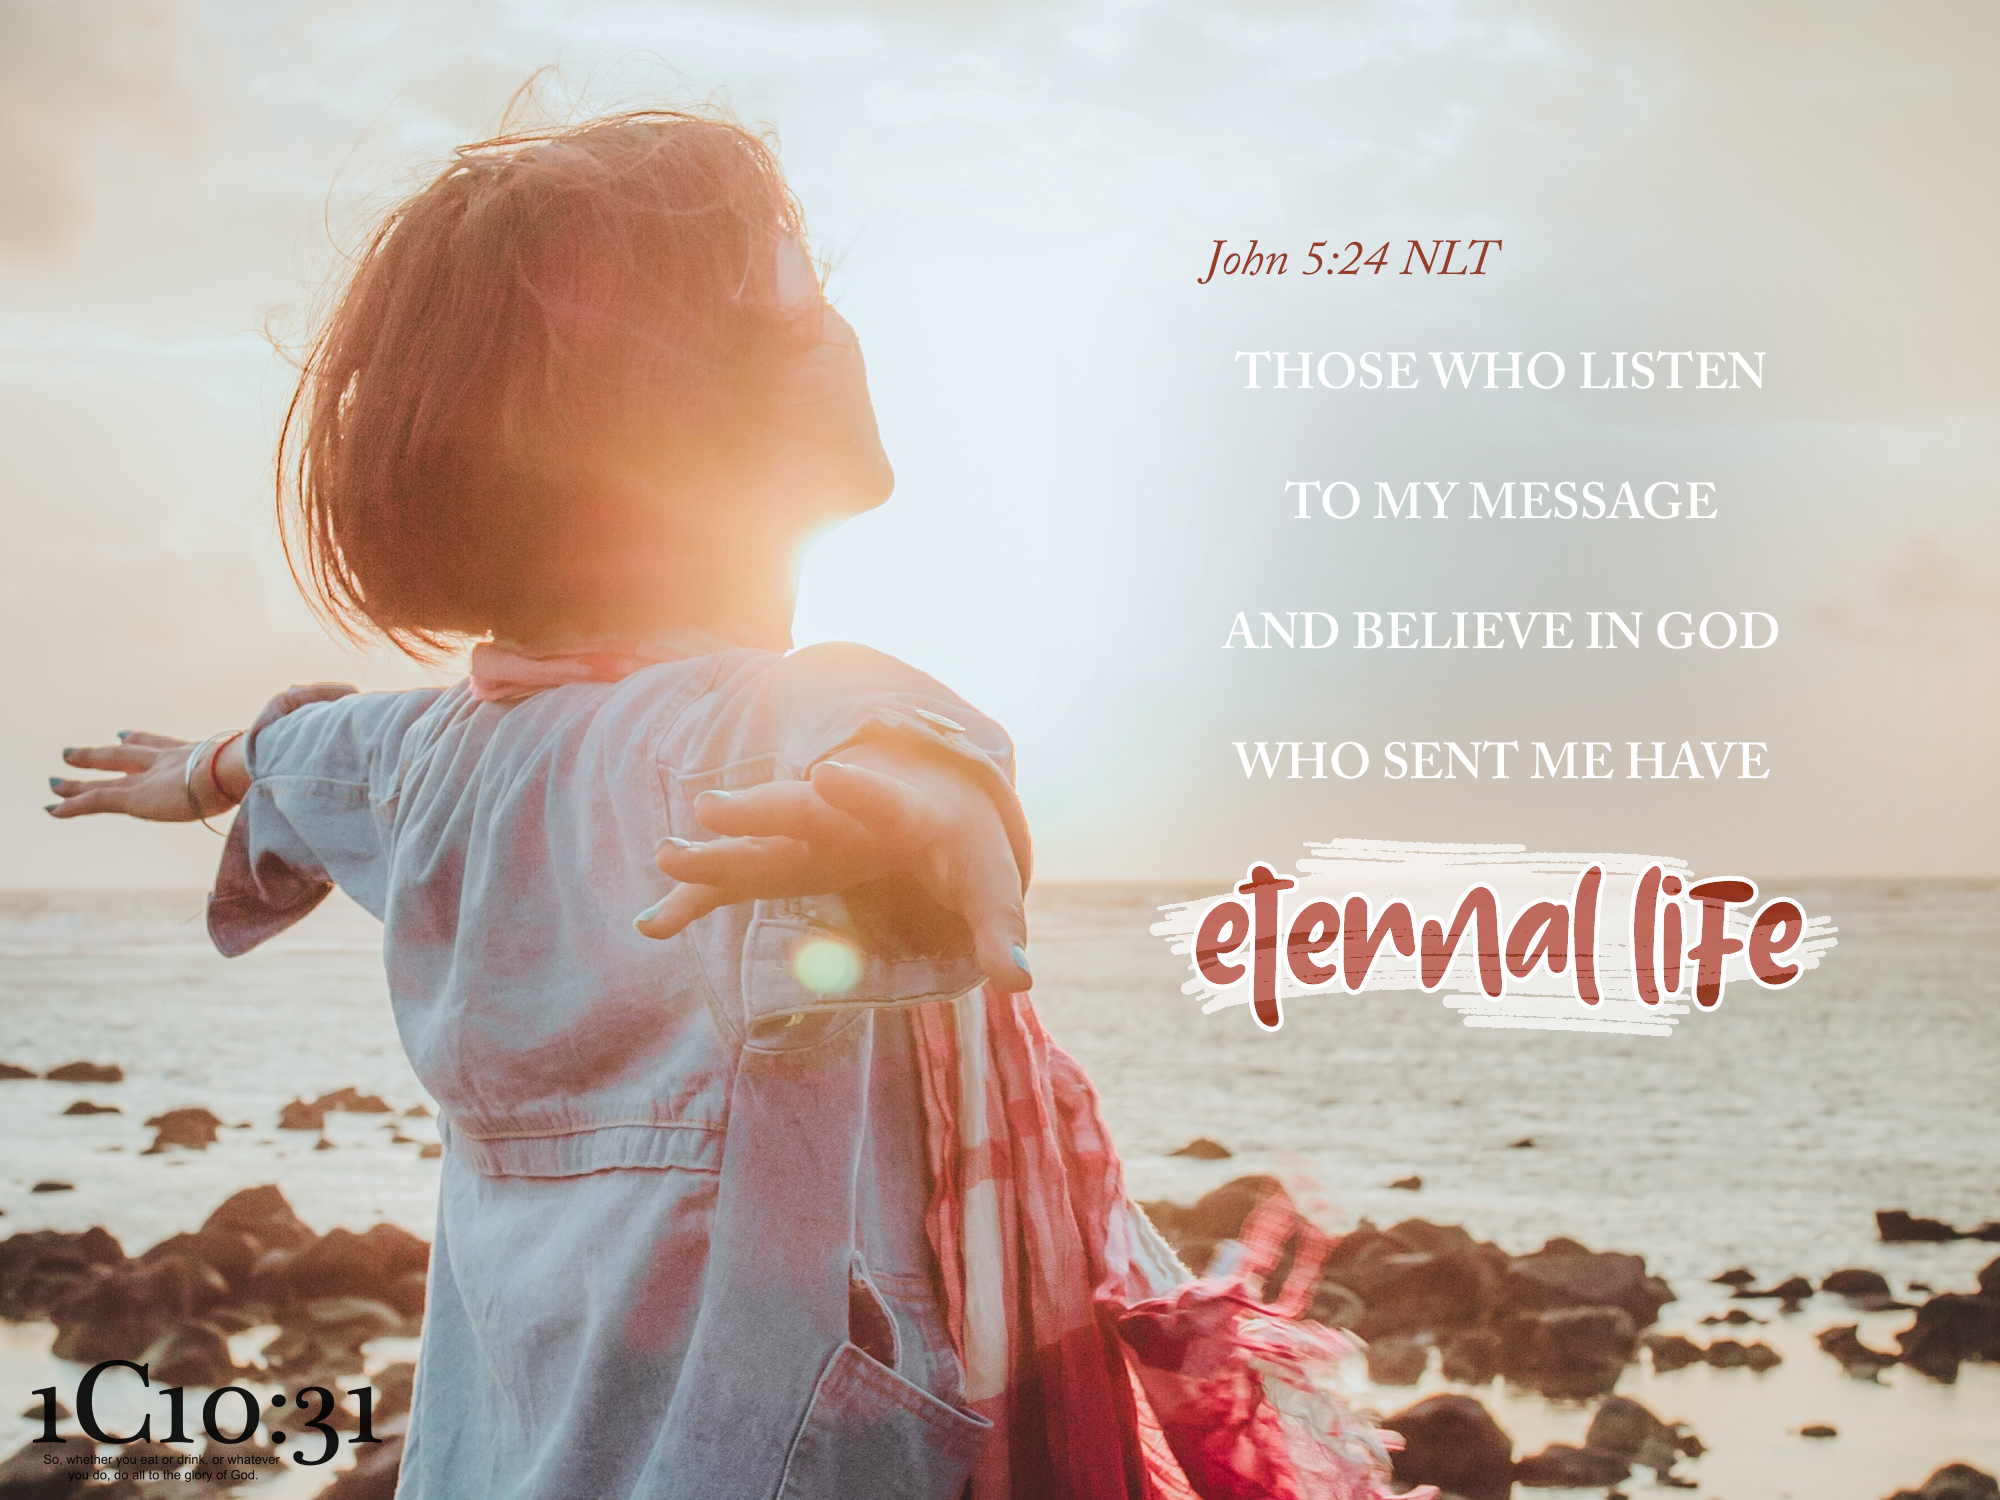 """John 5:24 - """"I tell you the truth, those who listen to my message and believe in God who sent me have eternal life. They will never be condemned for their sins, but they have already passed from death into life."""